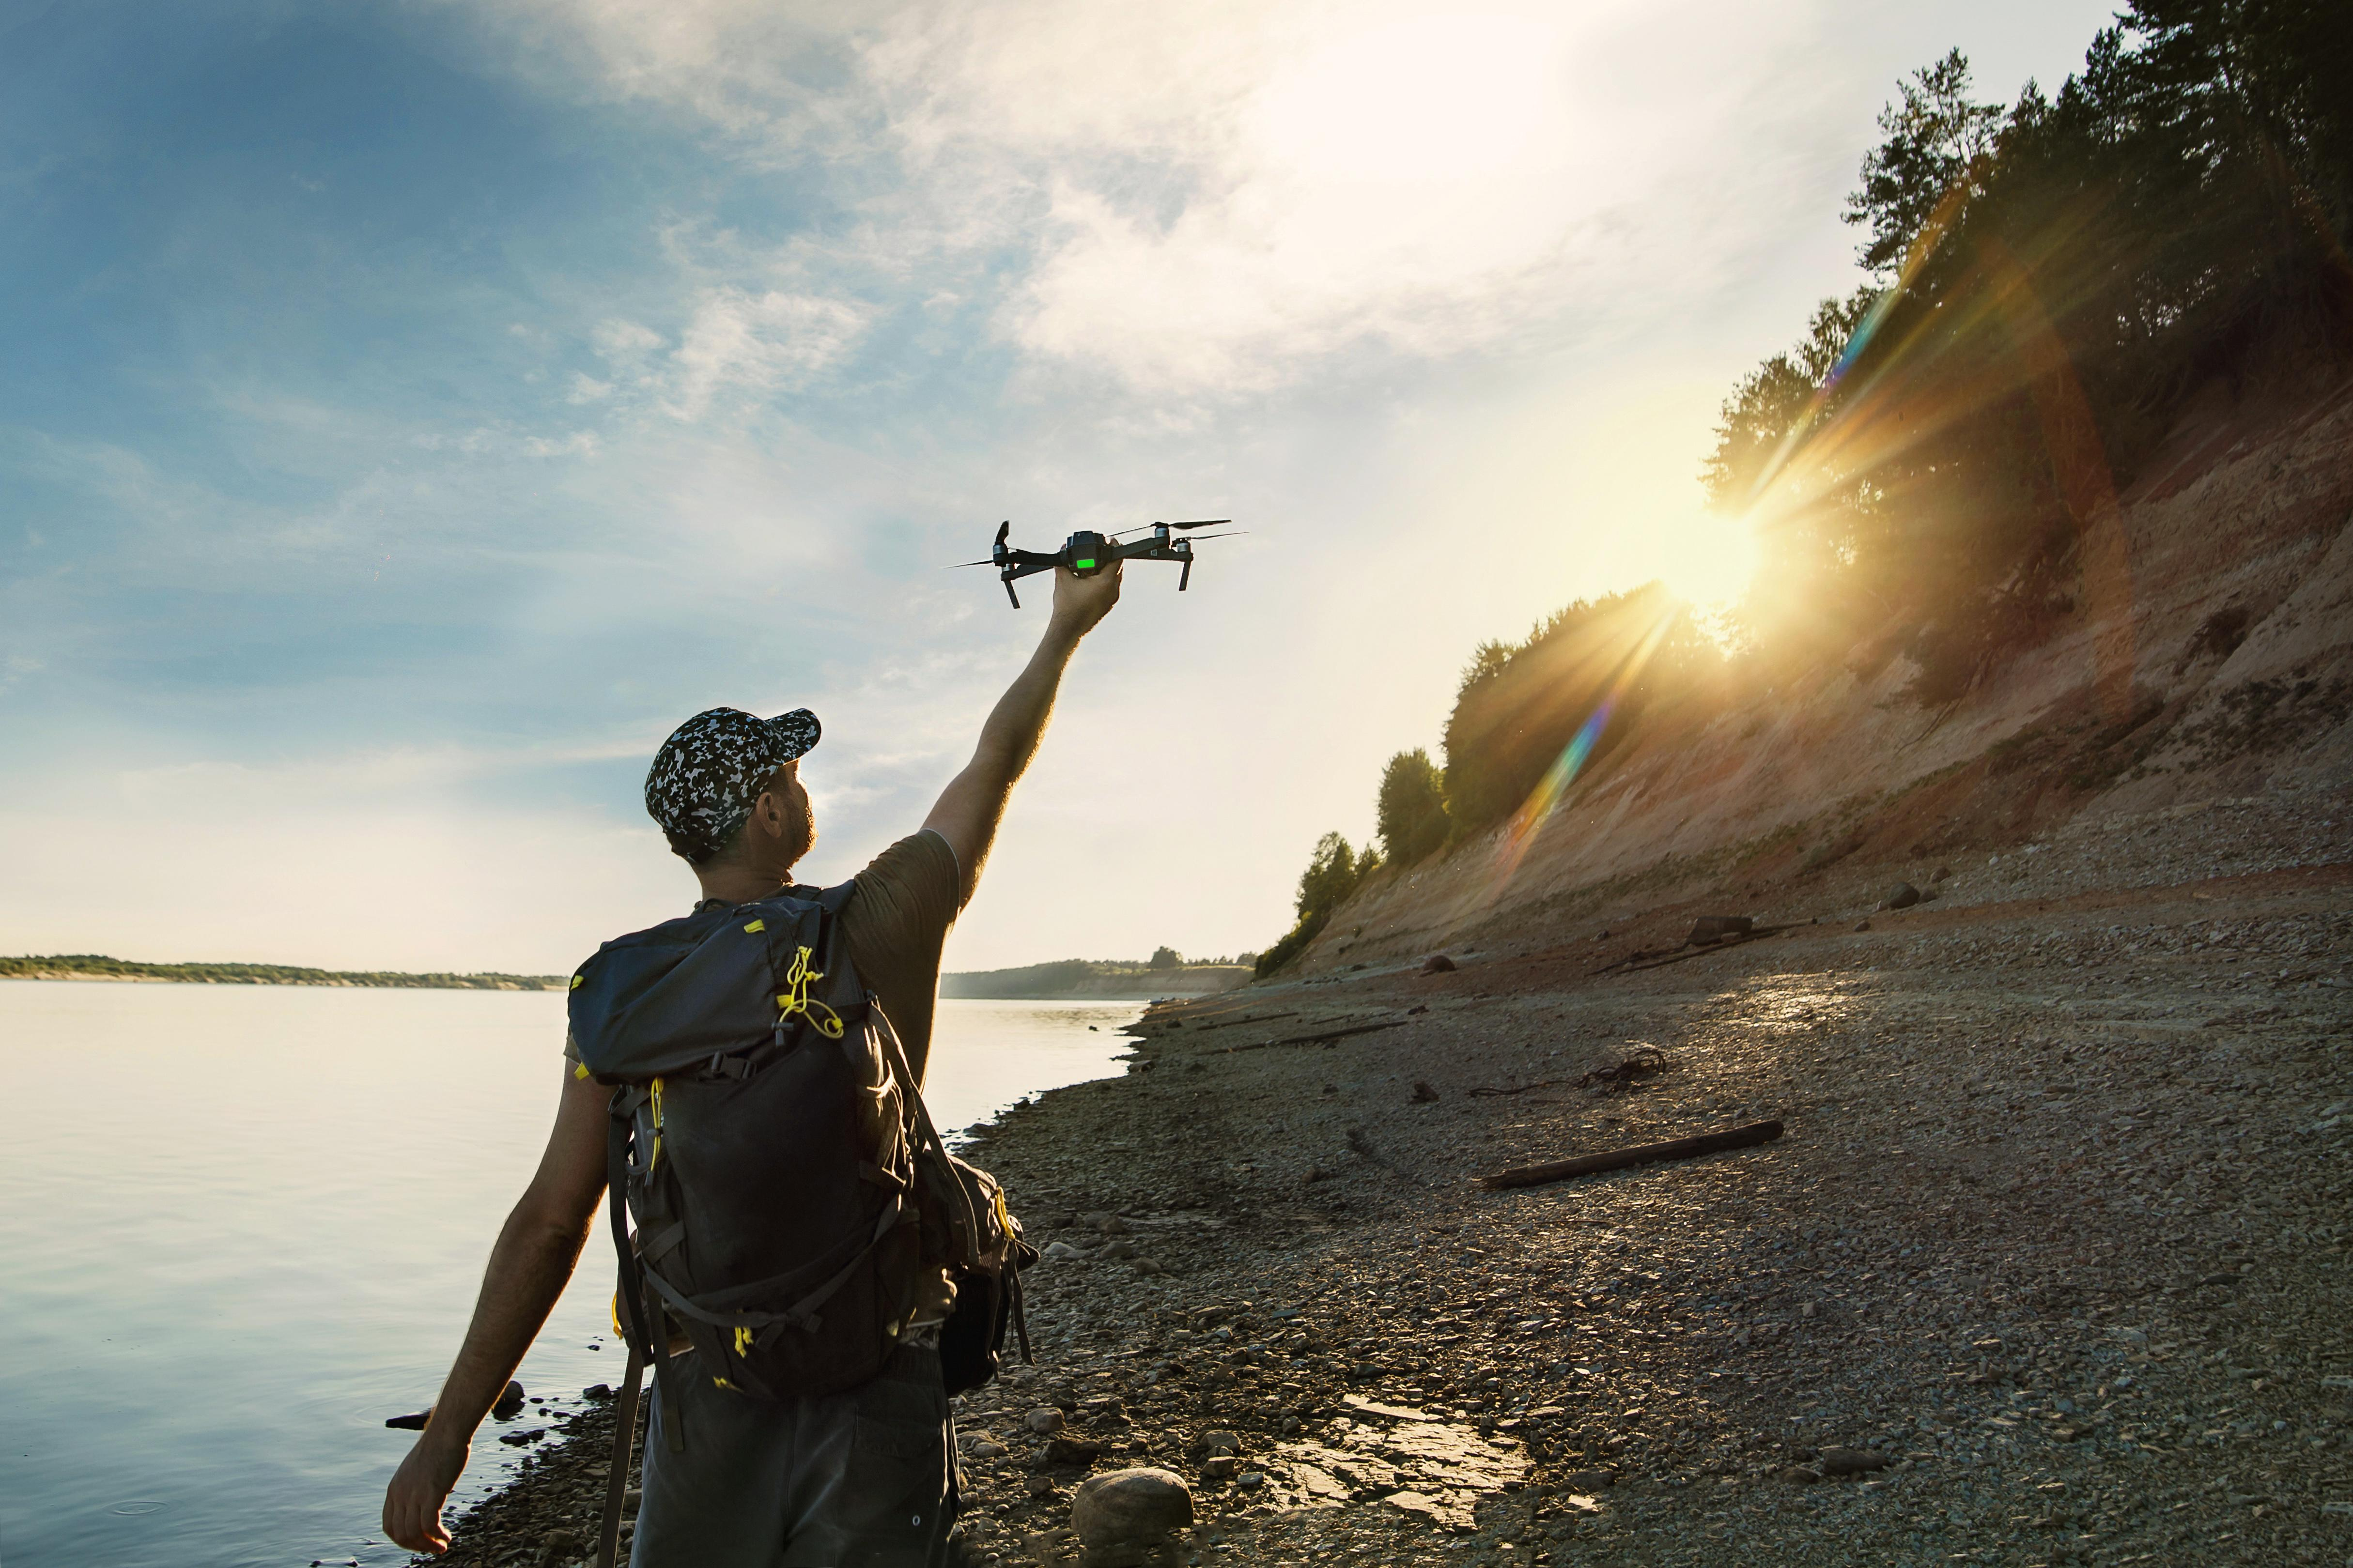 This startup is letting people fly drones remotely all over the world for just $7